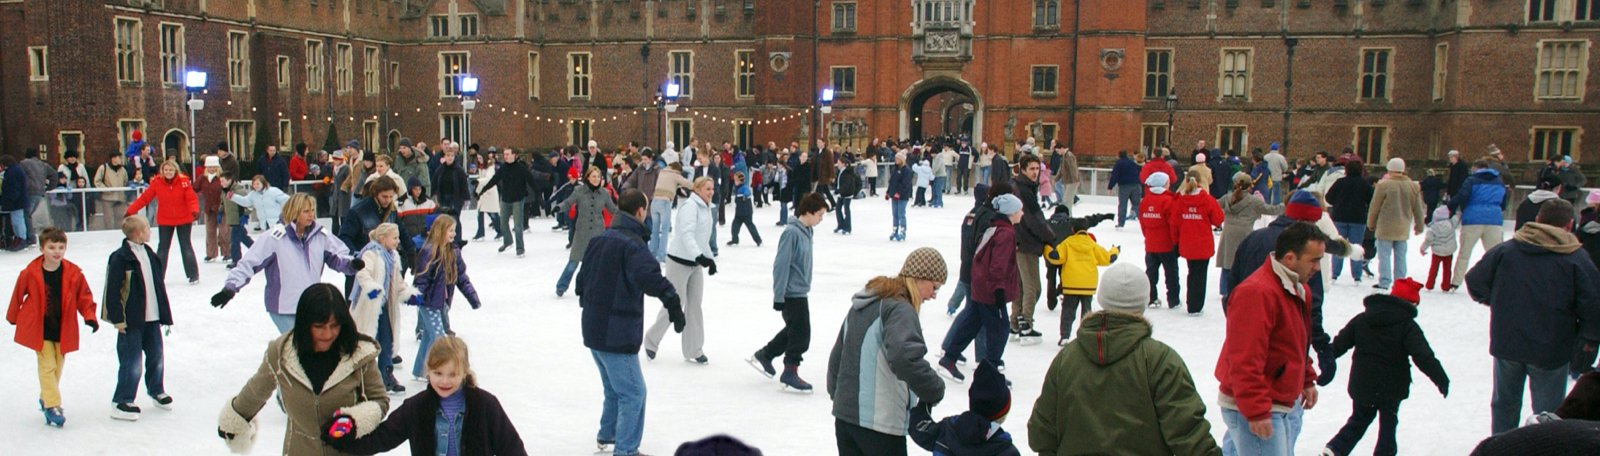 How do you ice skate step by step?